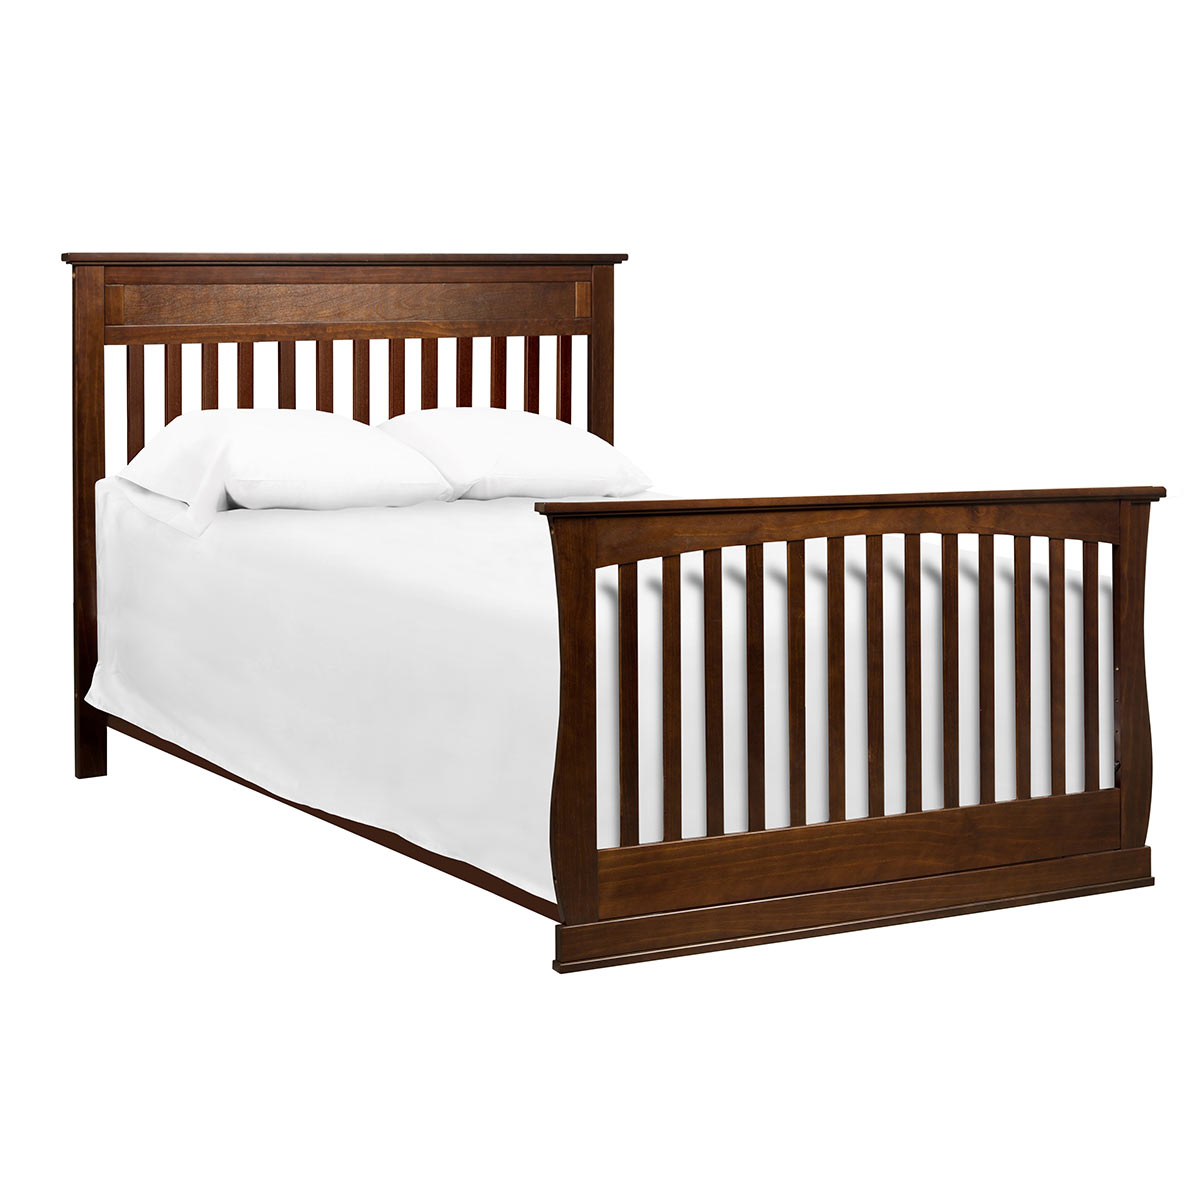 DaVinci Glenn 4 In 1 Convertible Crib With Toddler Bed Conversion Kit Espresso FREE SHIPPING